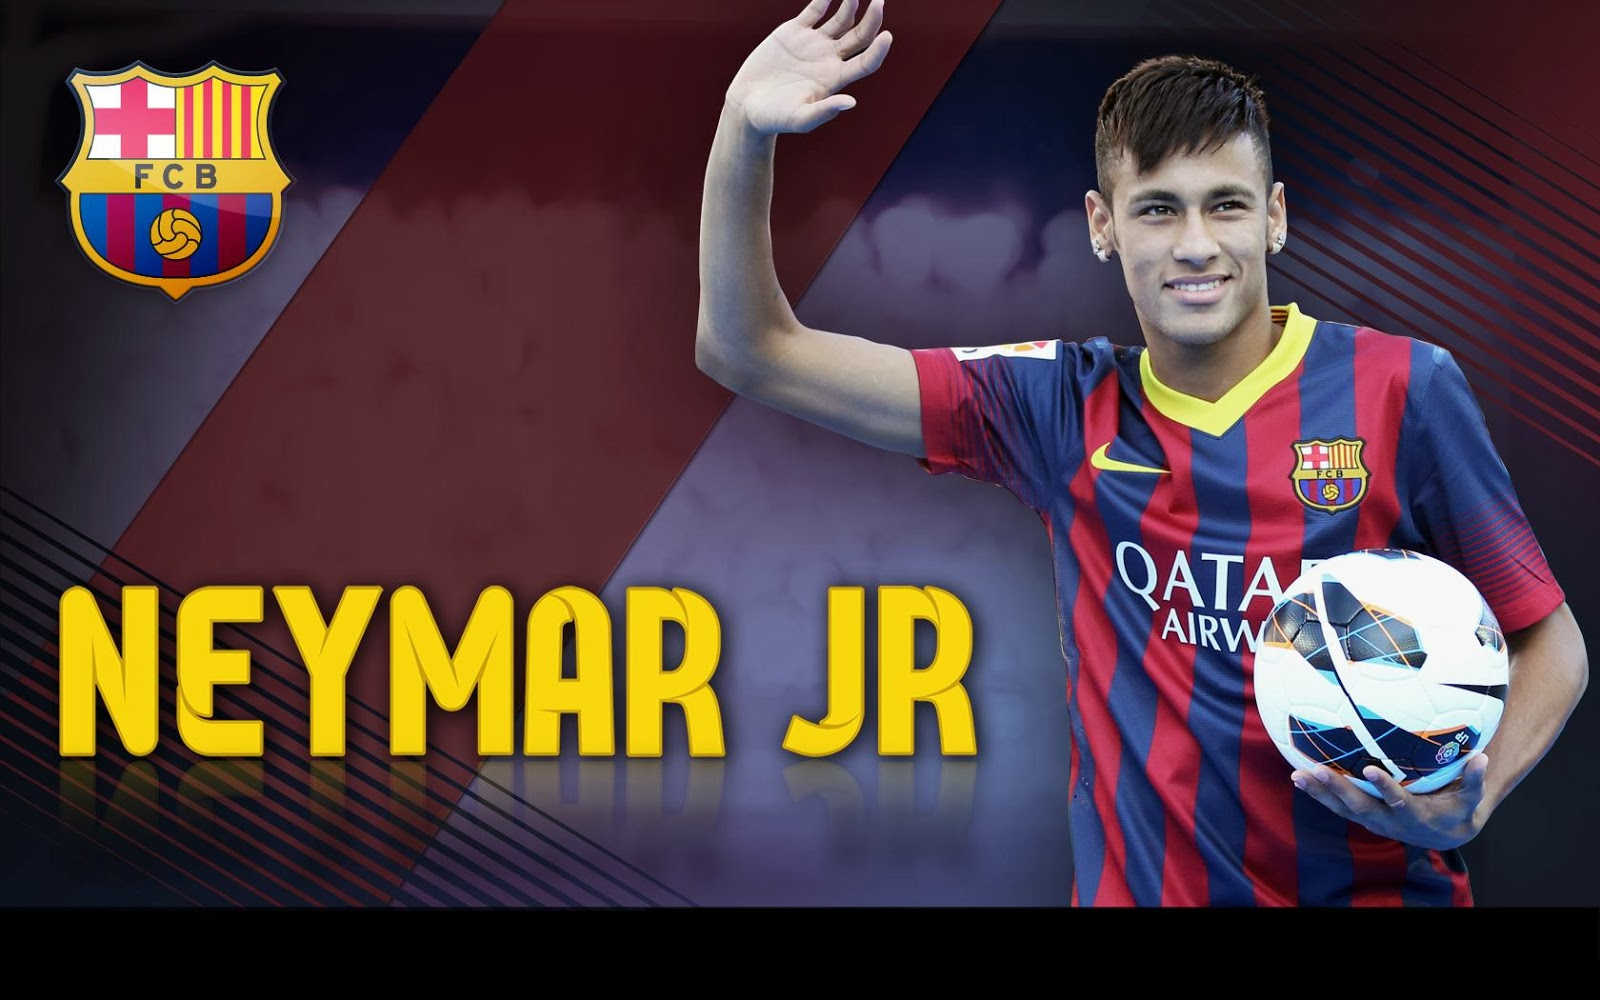 Words Celebrities Wallpapers: Neymar Jr Brand New HD Wallpapers&Pices 2015